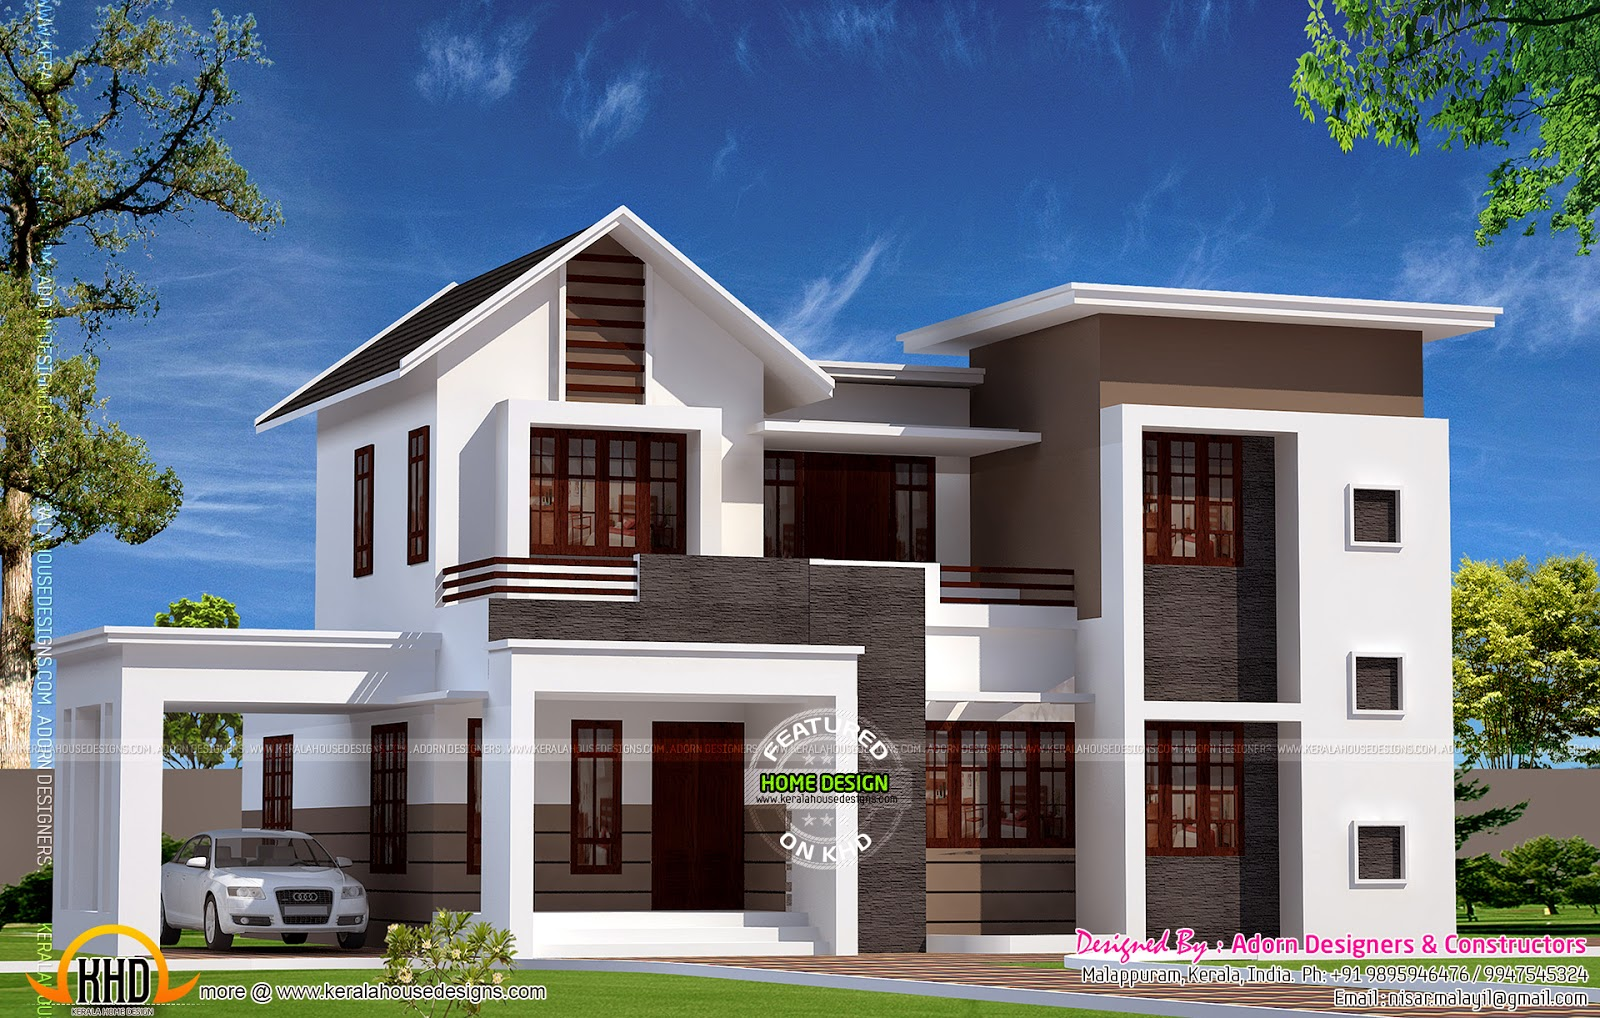 September 2014 kerala home design and floor plans for Www kerala house designs com